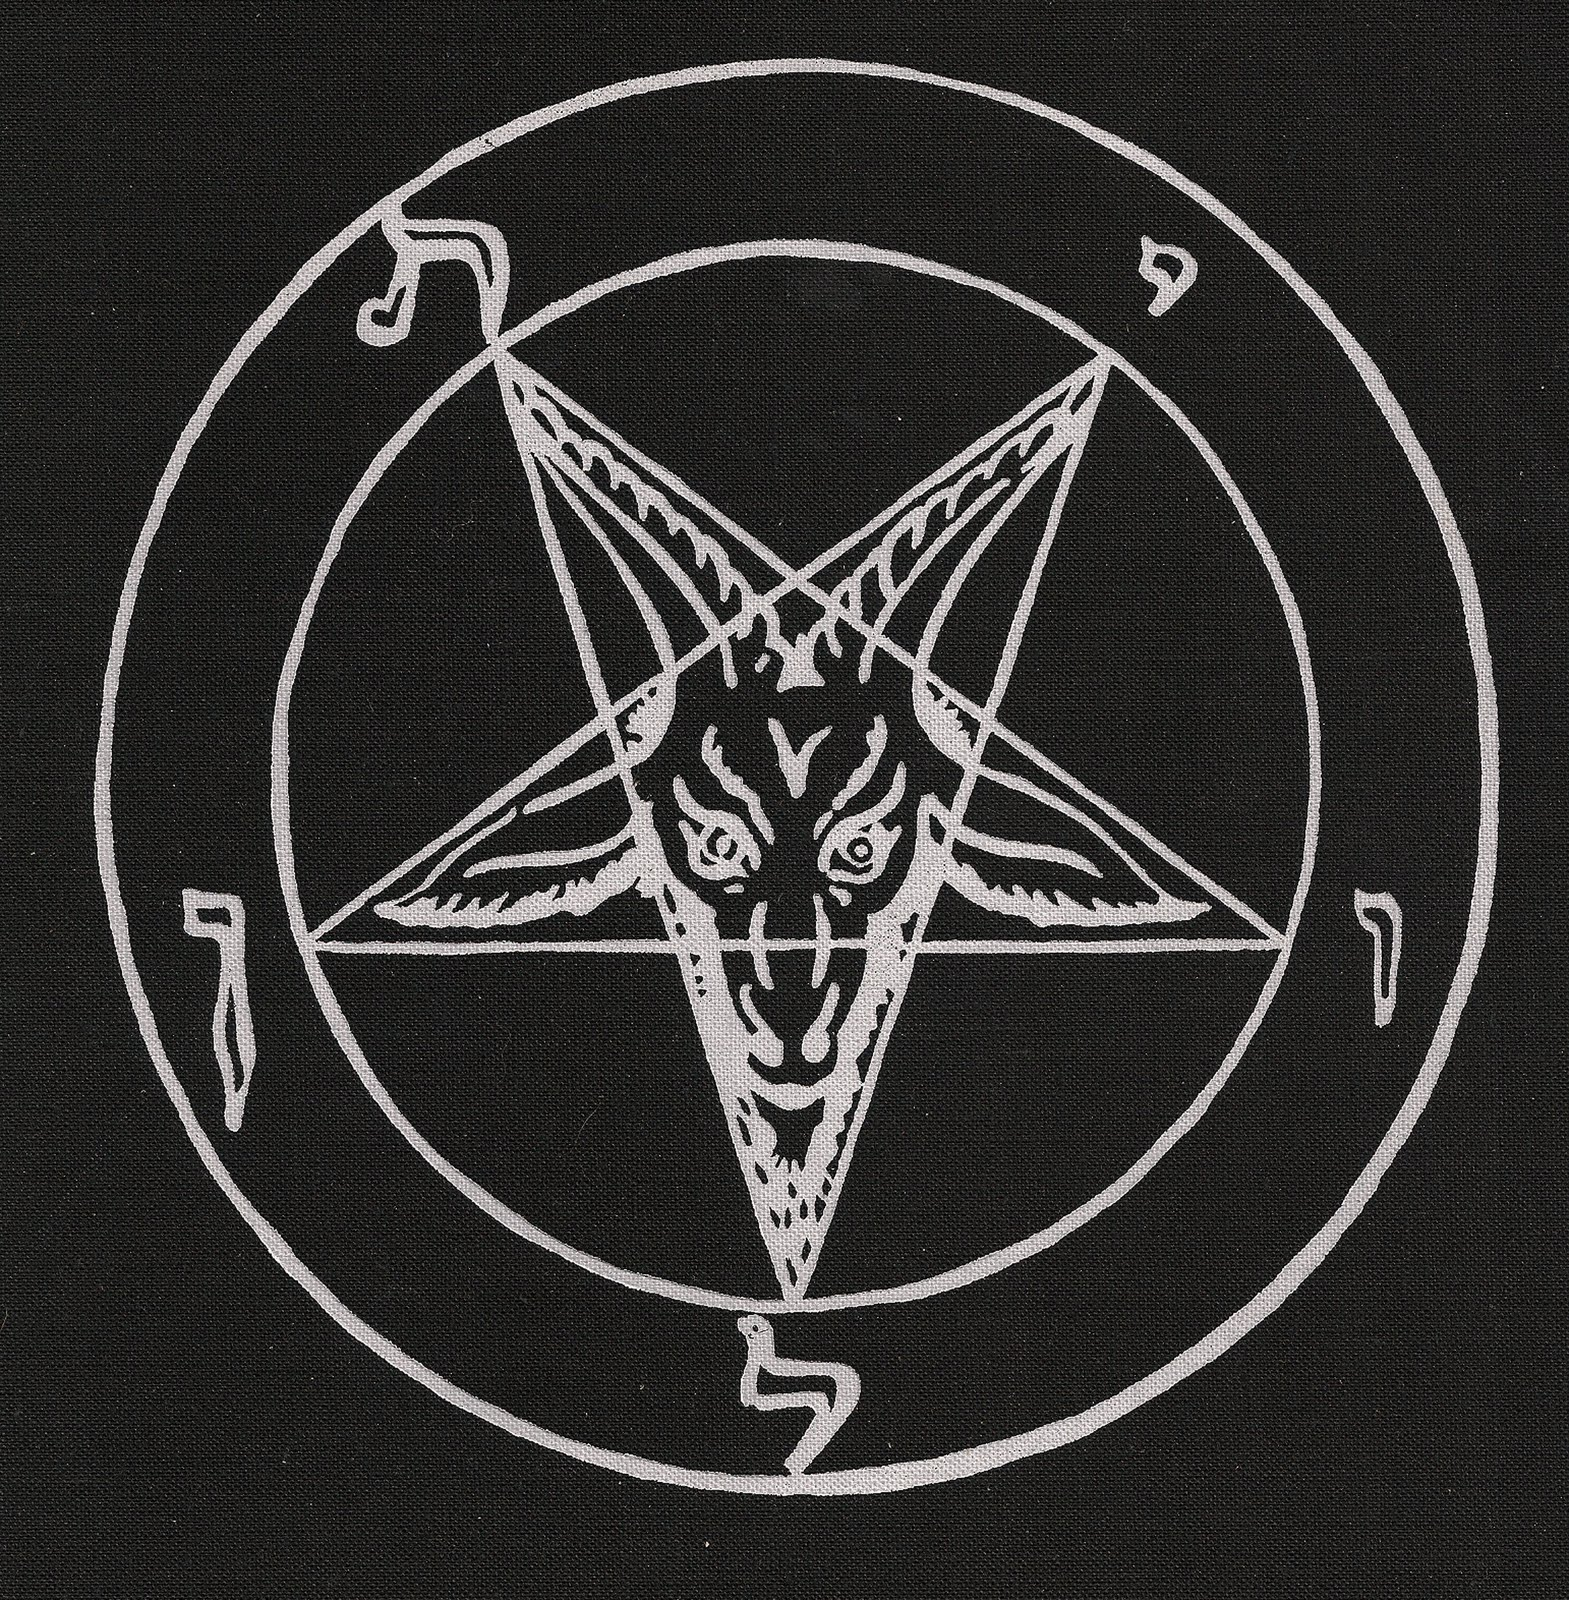 Up Means Demon Worship Or Satanism A Two Points Five Pointed